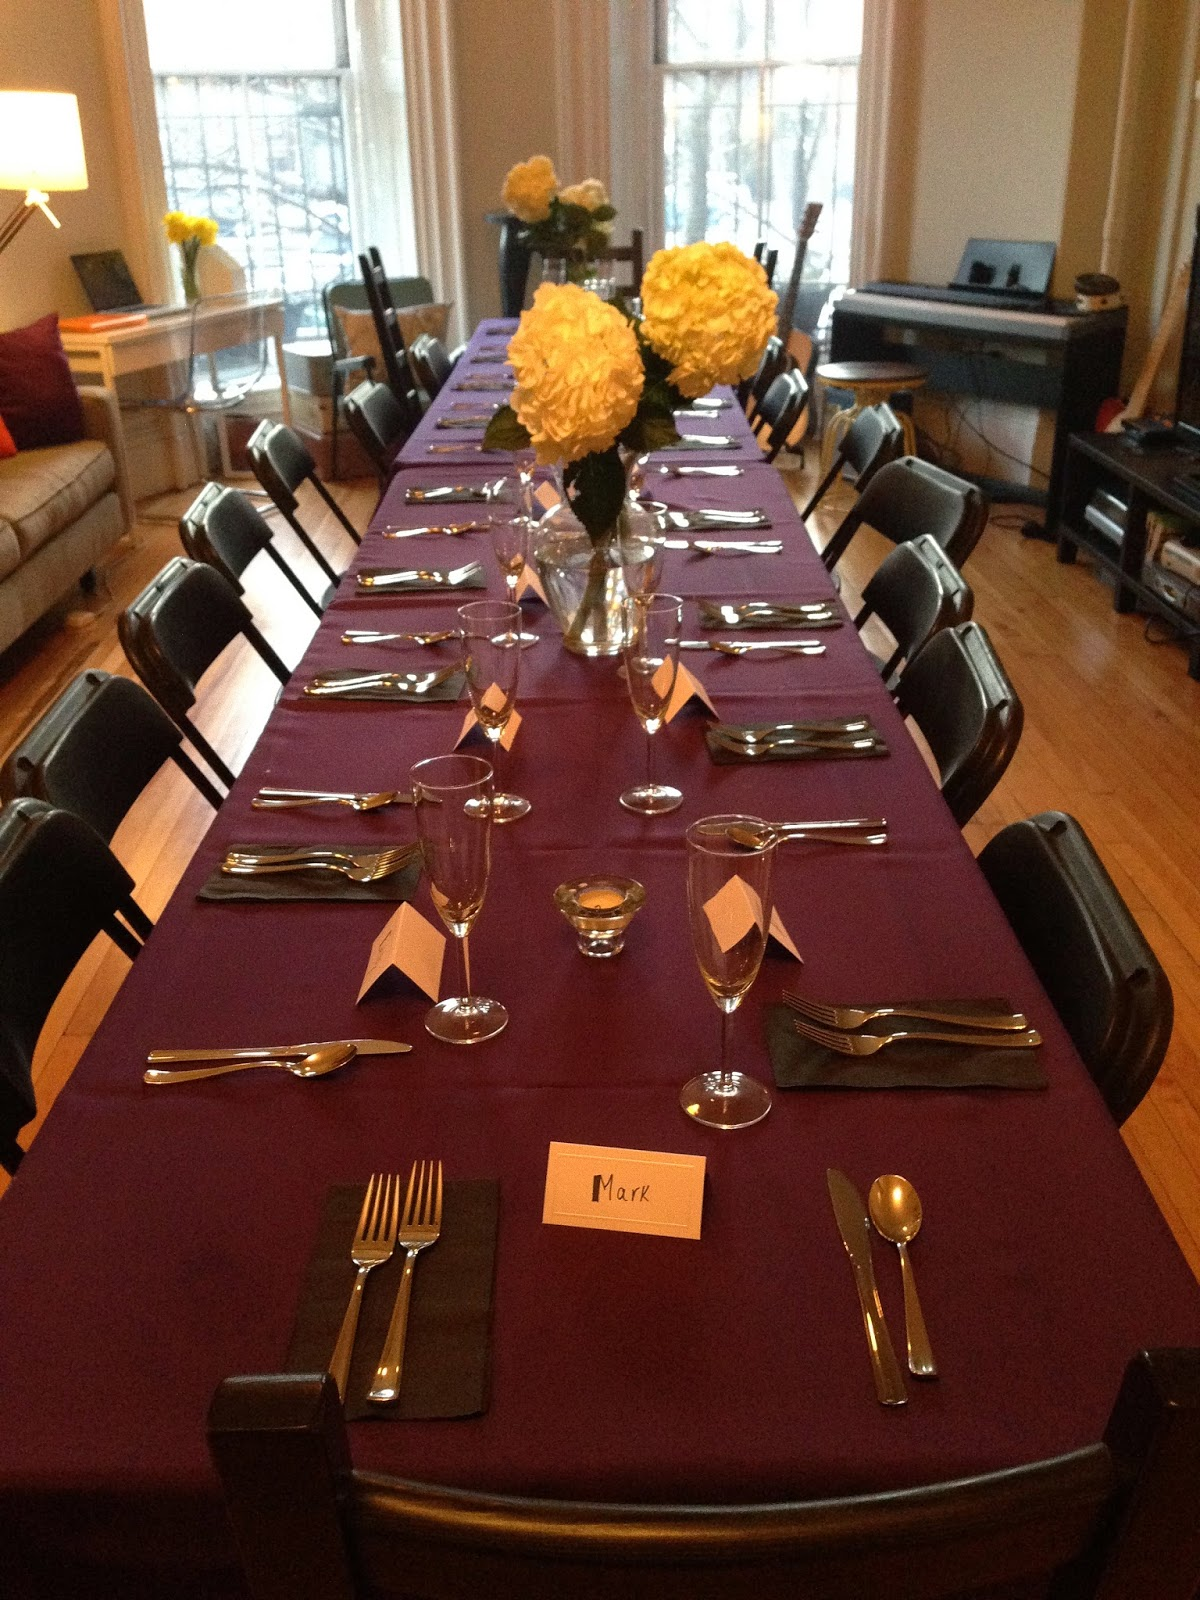 Table set for 18, purple linens and black chairs.